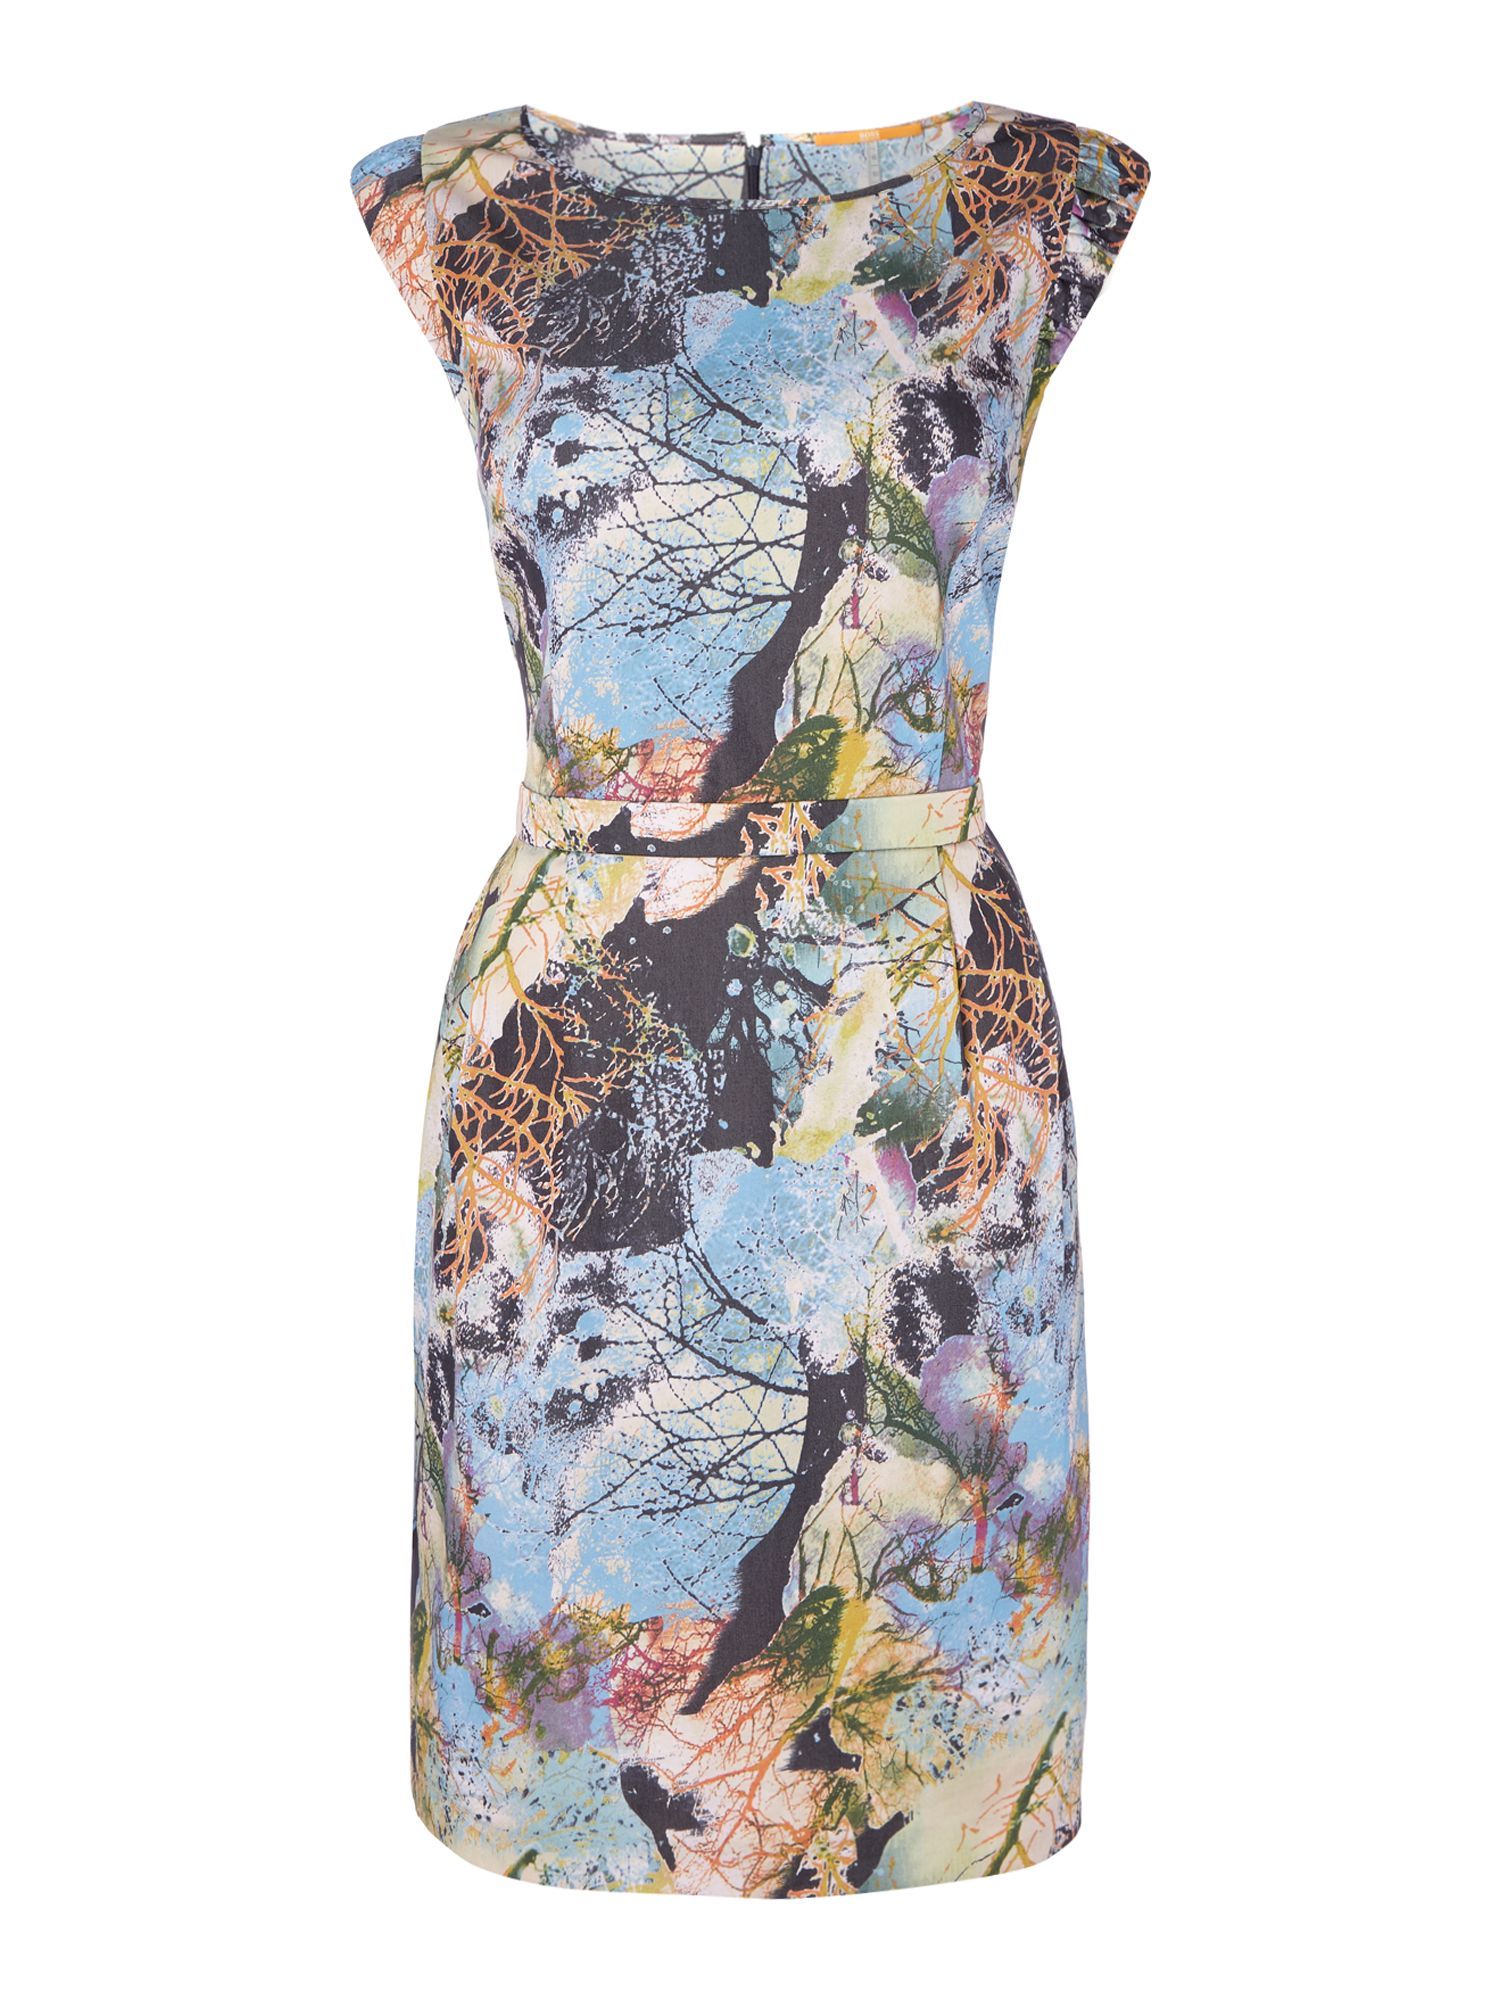 Hugo Boss Aday Printed Dress in Open Miscellaneous, Multi-Coloured